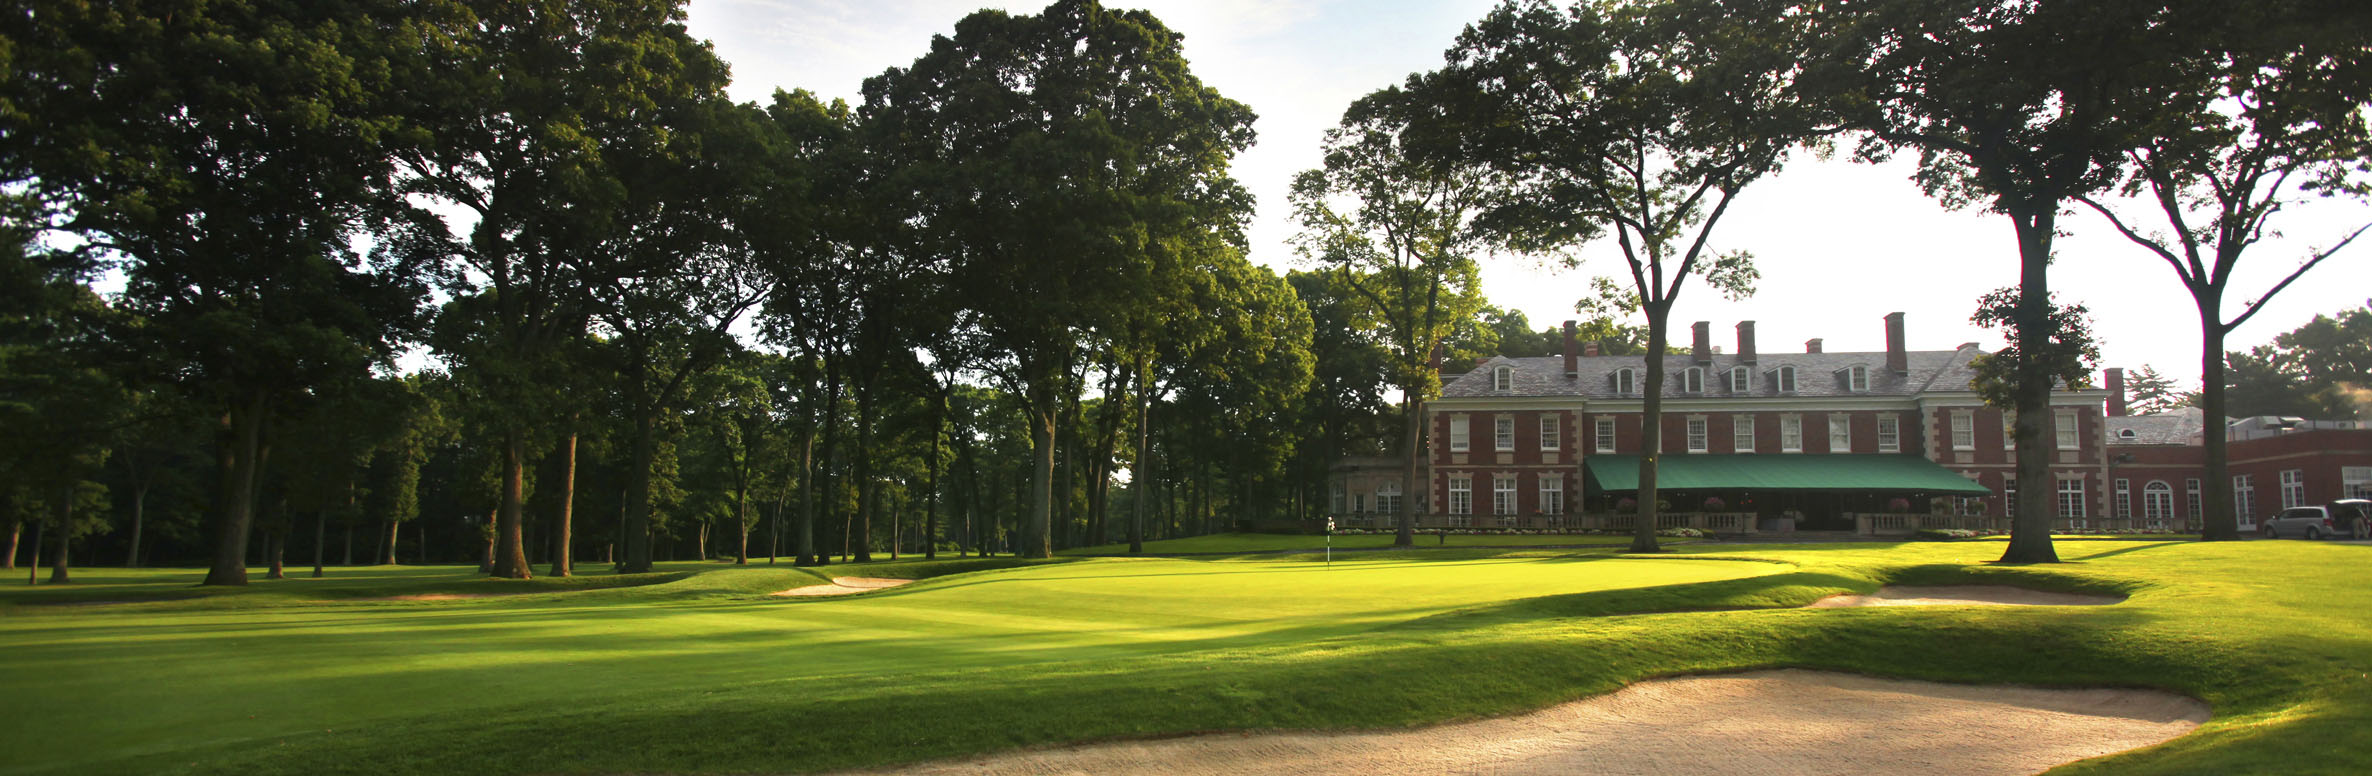 Golf Course Image - Muttontown Club No. 18